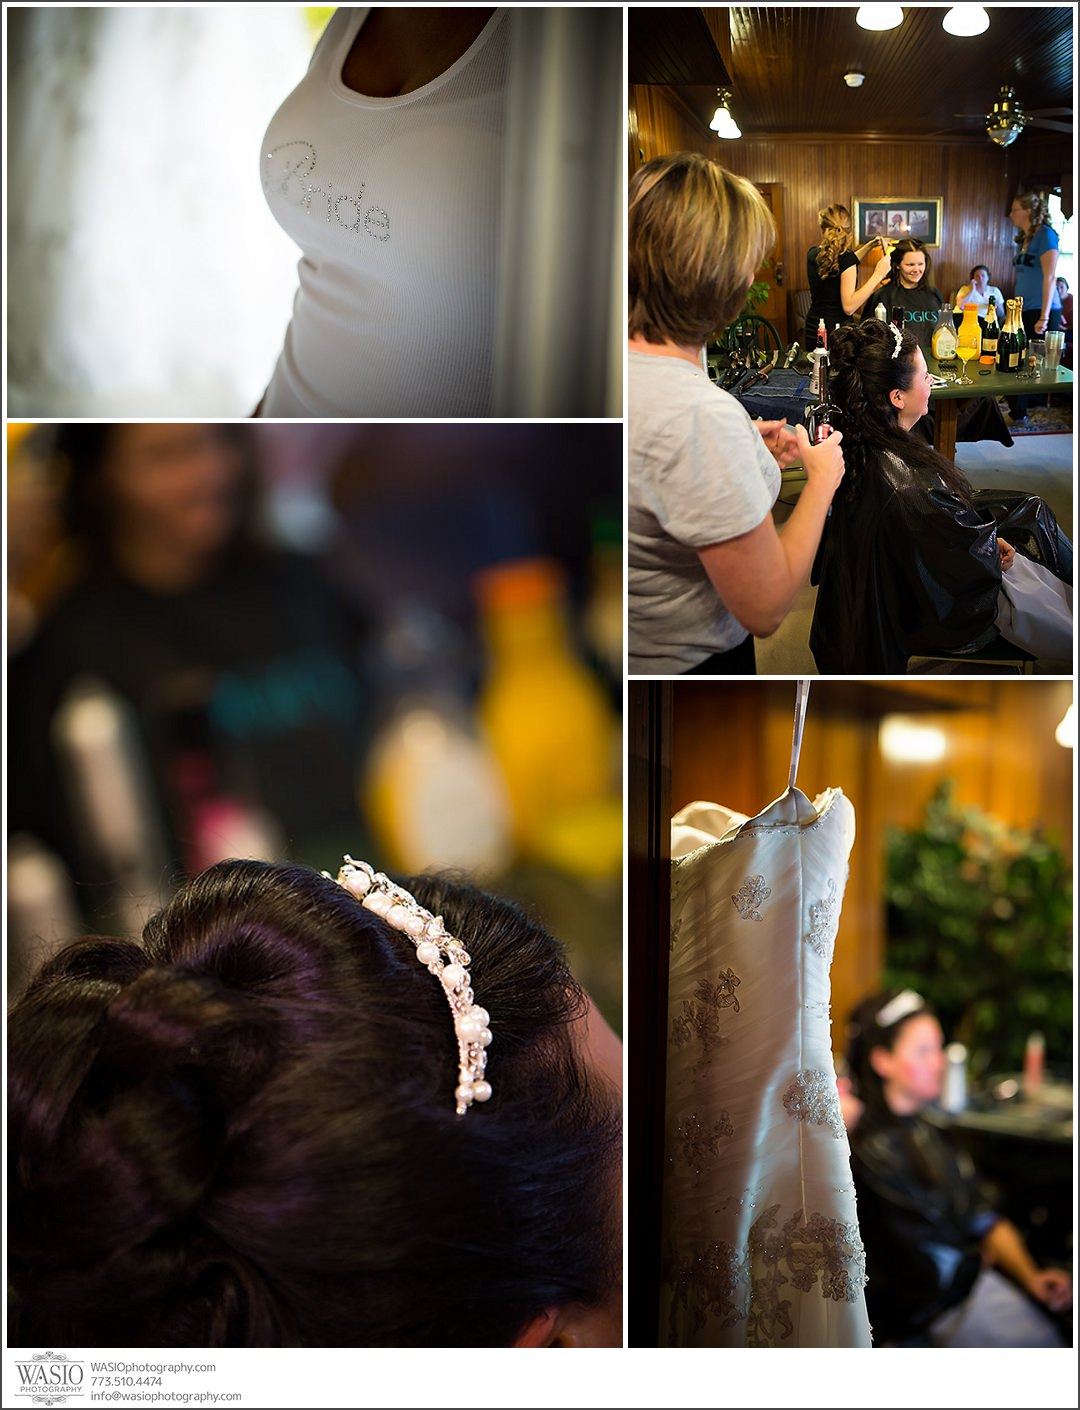 wedding-photography-in-indiana-065-bride-preparation Wedding Photography in Indiana - Natalie + Jae